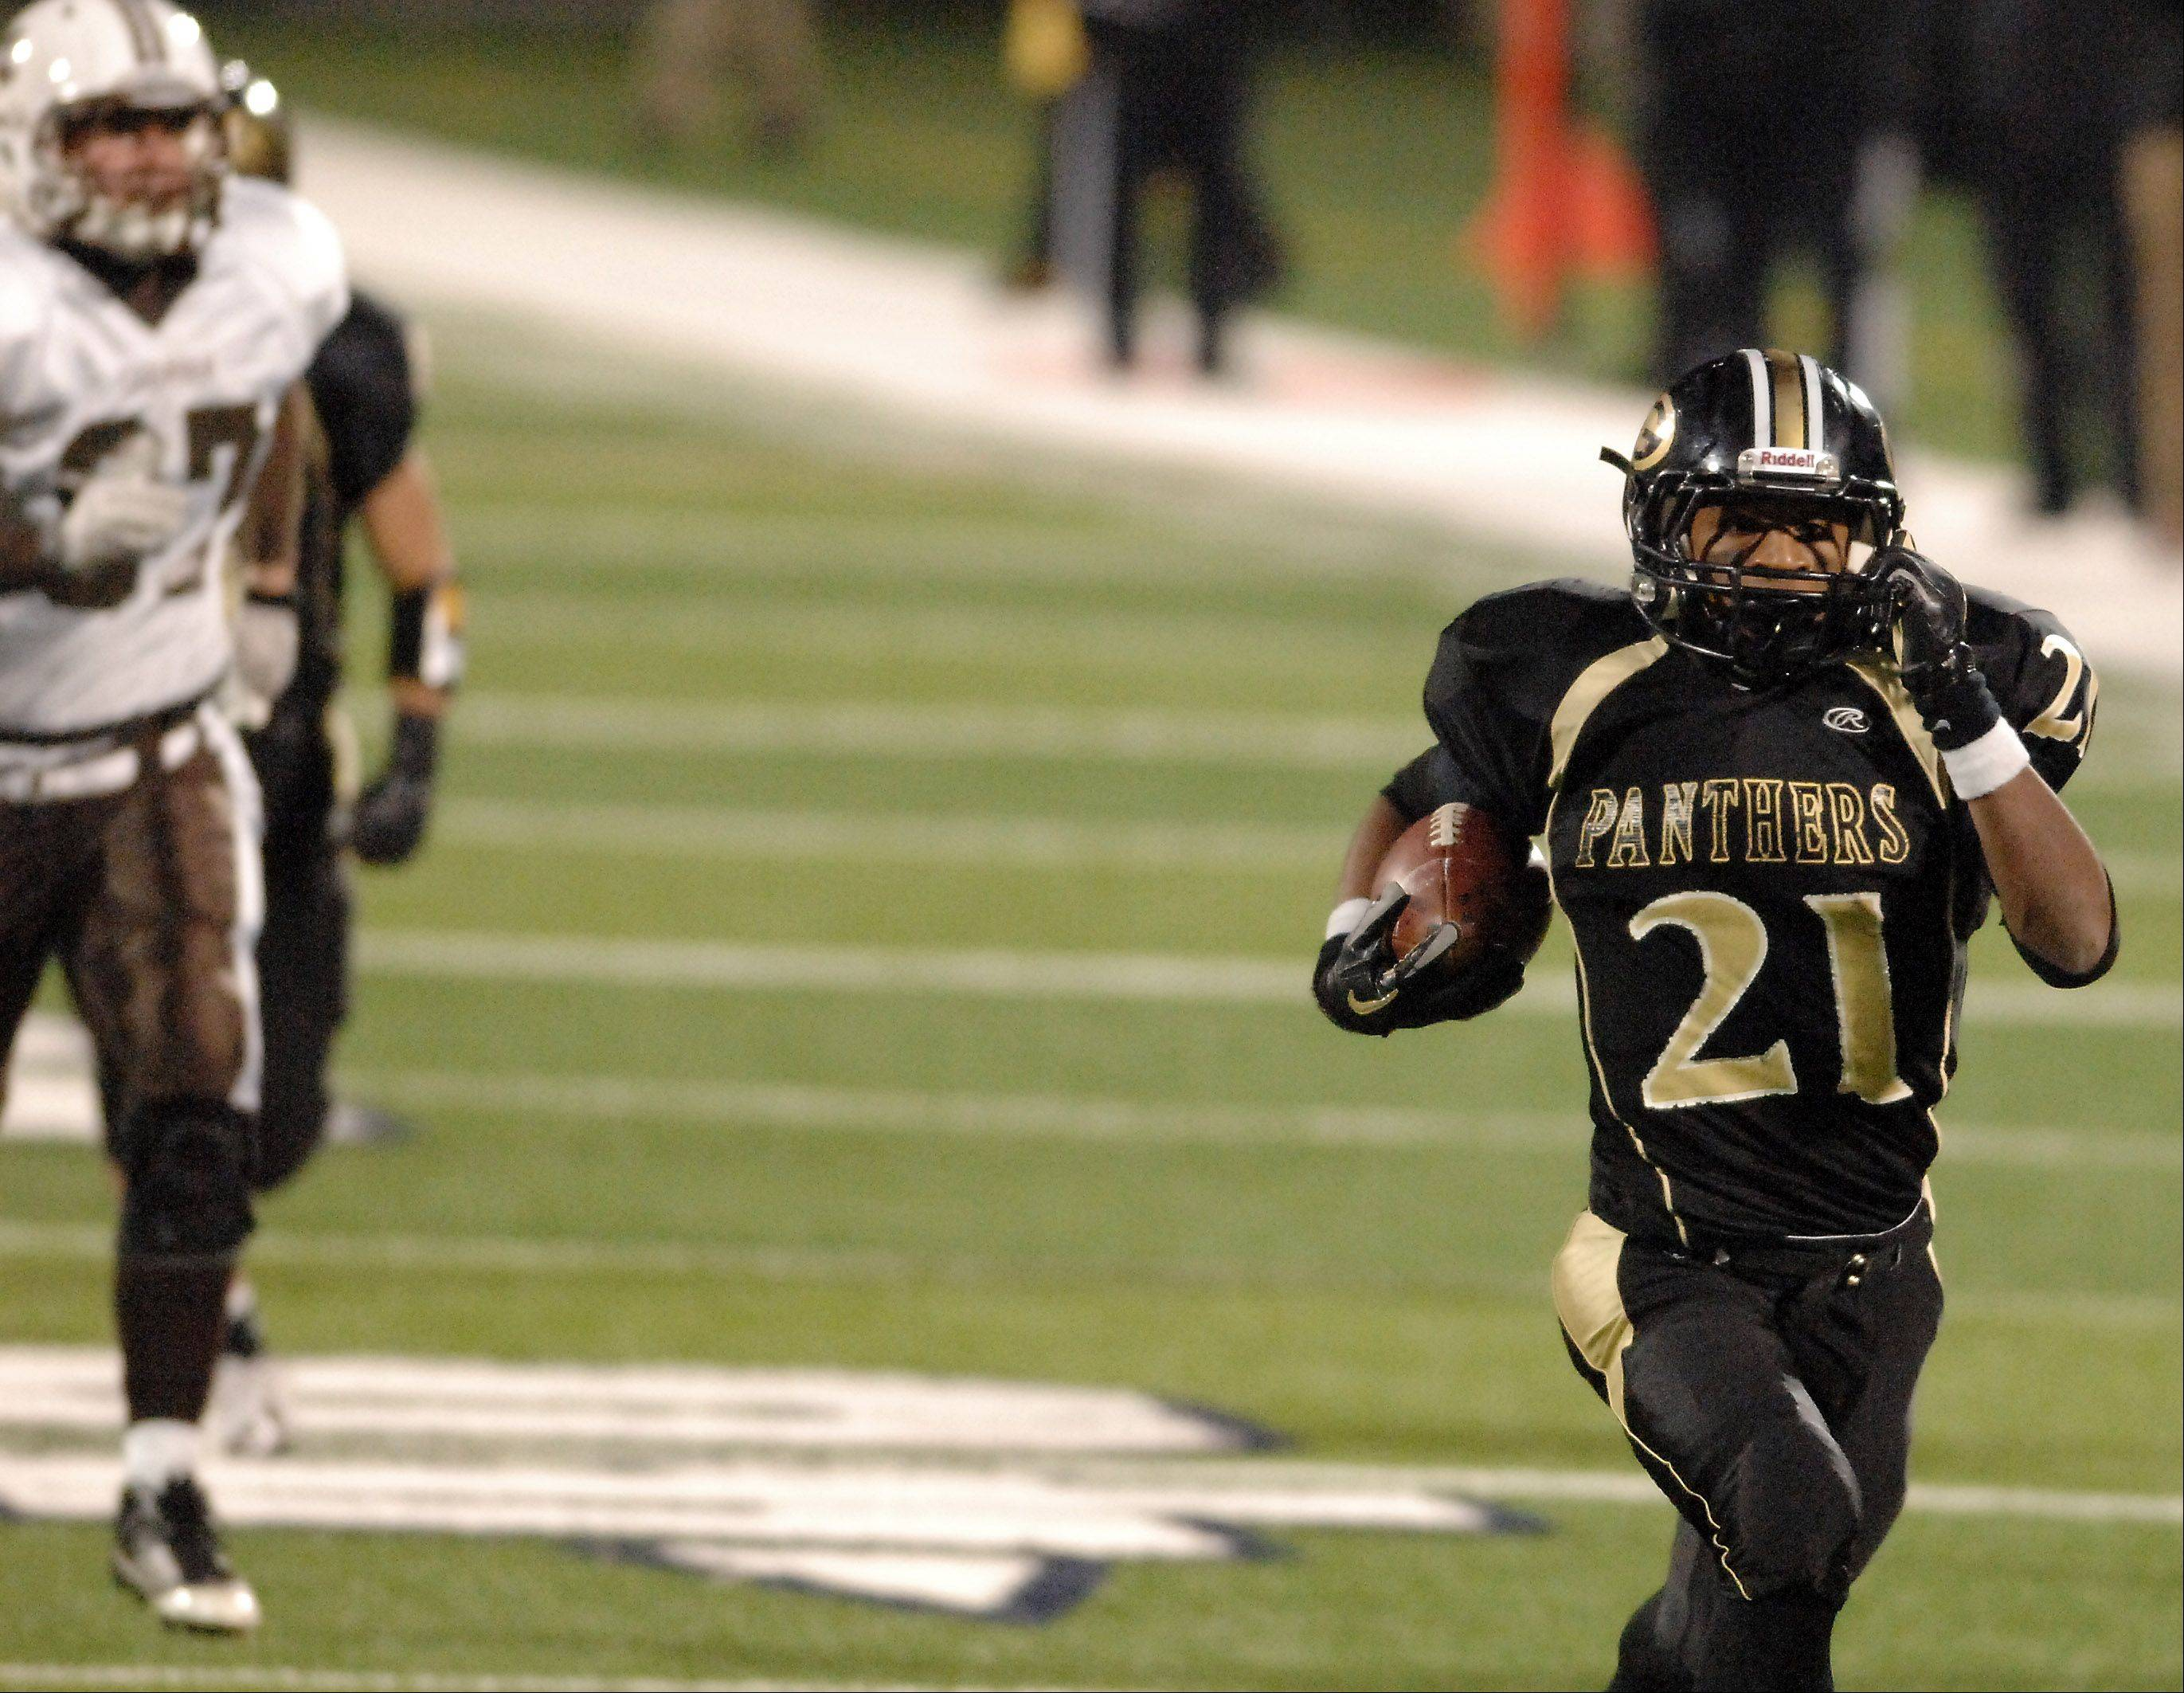 Glenbard North's Justin Jackson races to the end zone for a touchdown after aninterception during Saturday's Class 8A state title game at Memorial Stadium in Champaign.